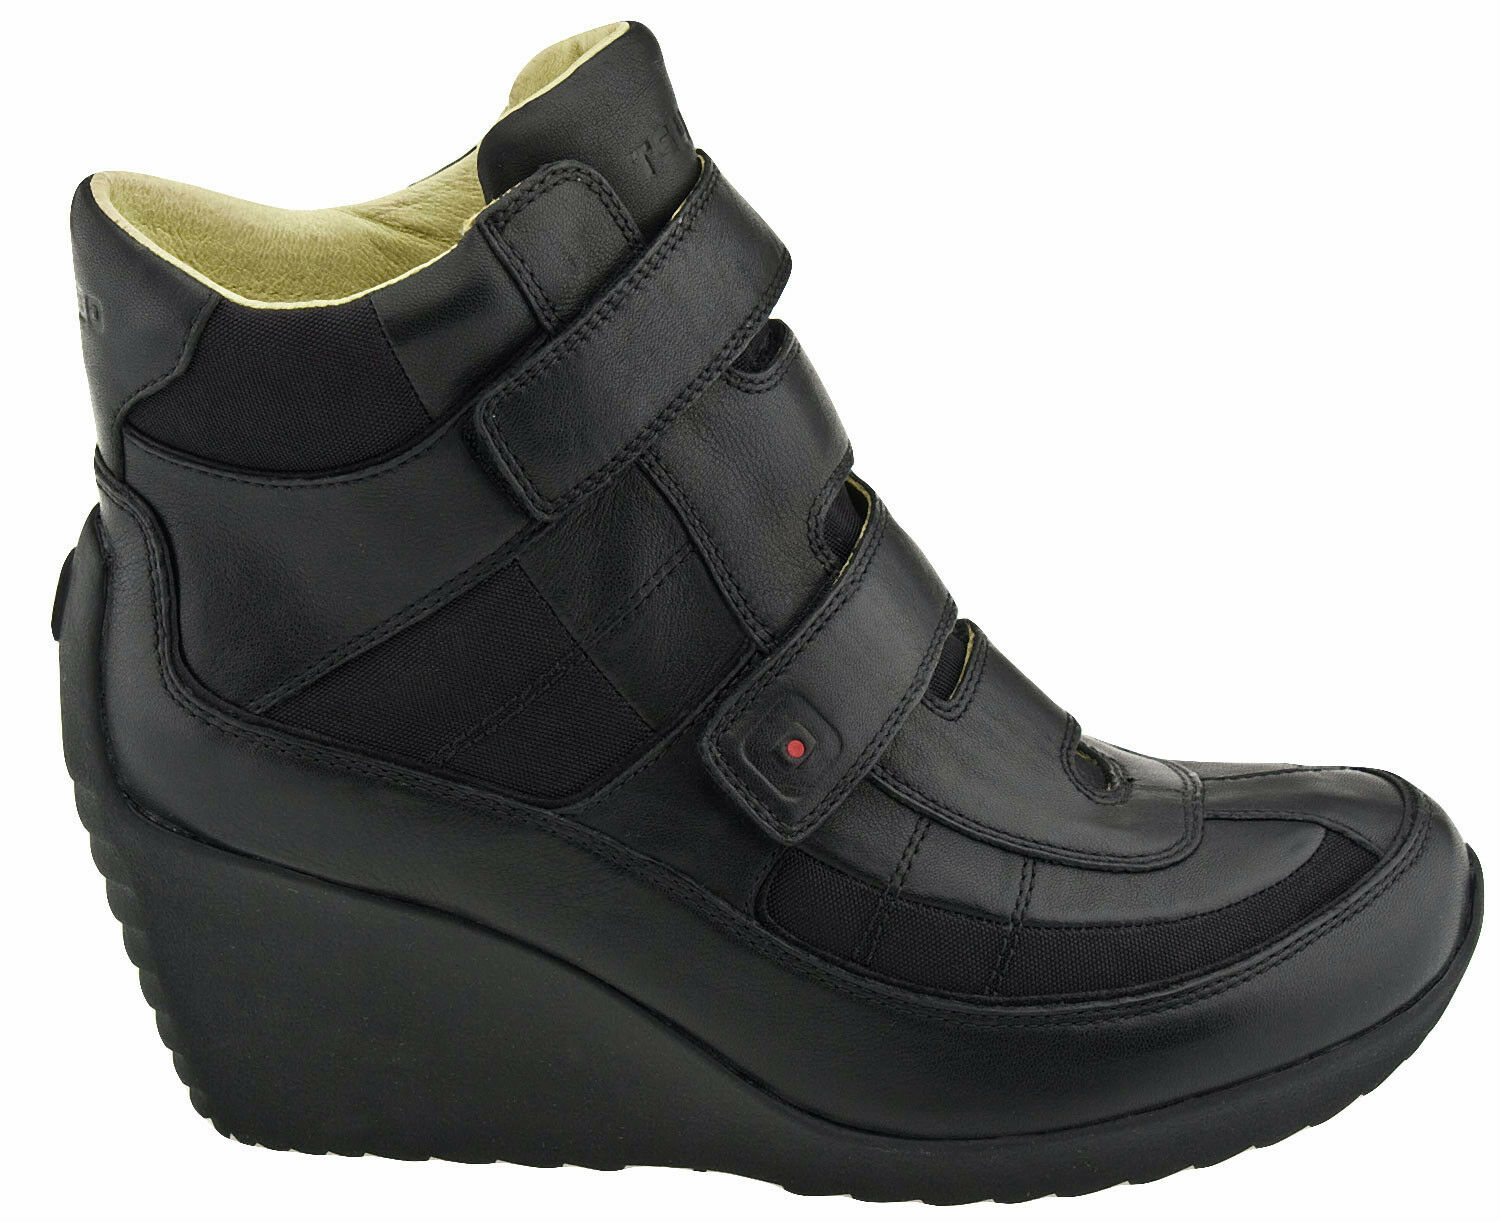 TSUBO Peary Strap women's boots compensé Cuir shoes US US US 8.5 UK 7 EU 39.5 rrp  8bebef